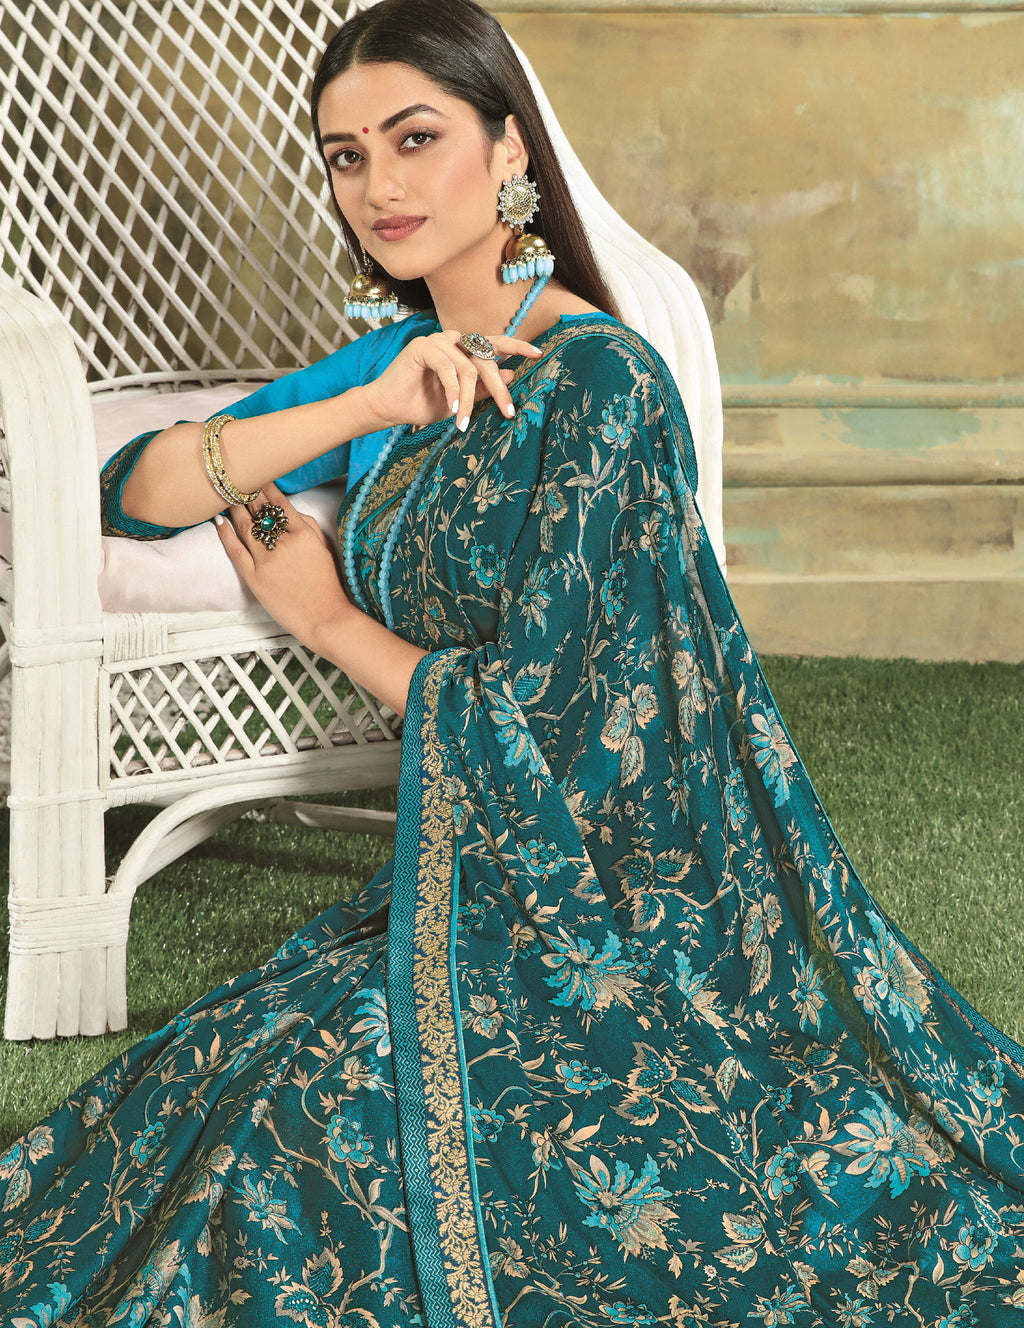 Rama Blue Color Georgette Youthful Kitty Party Sarees NYF-5674